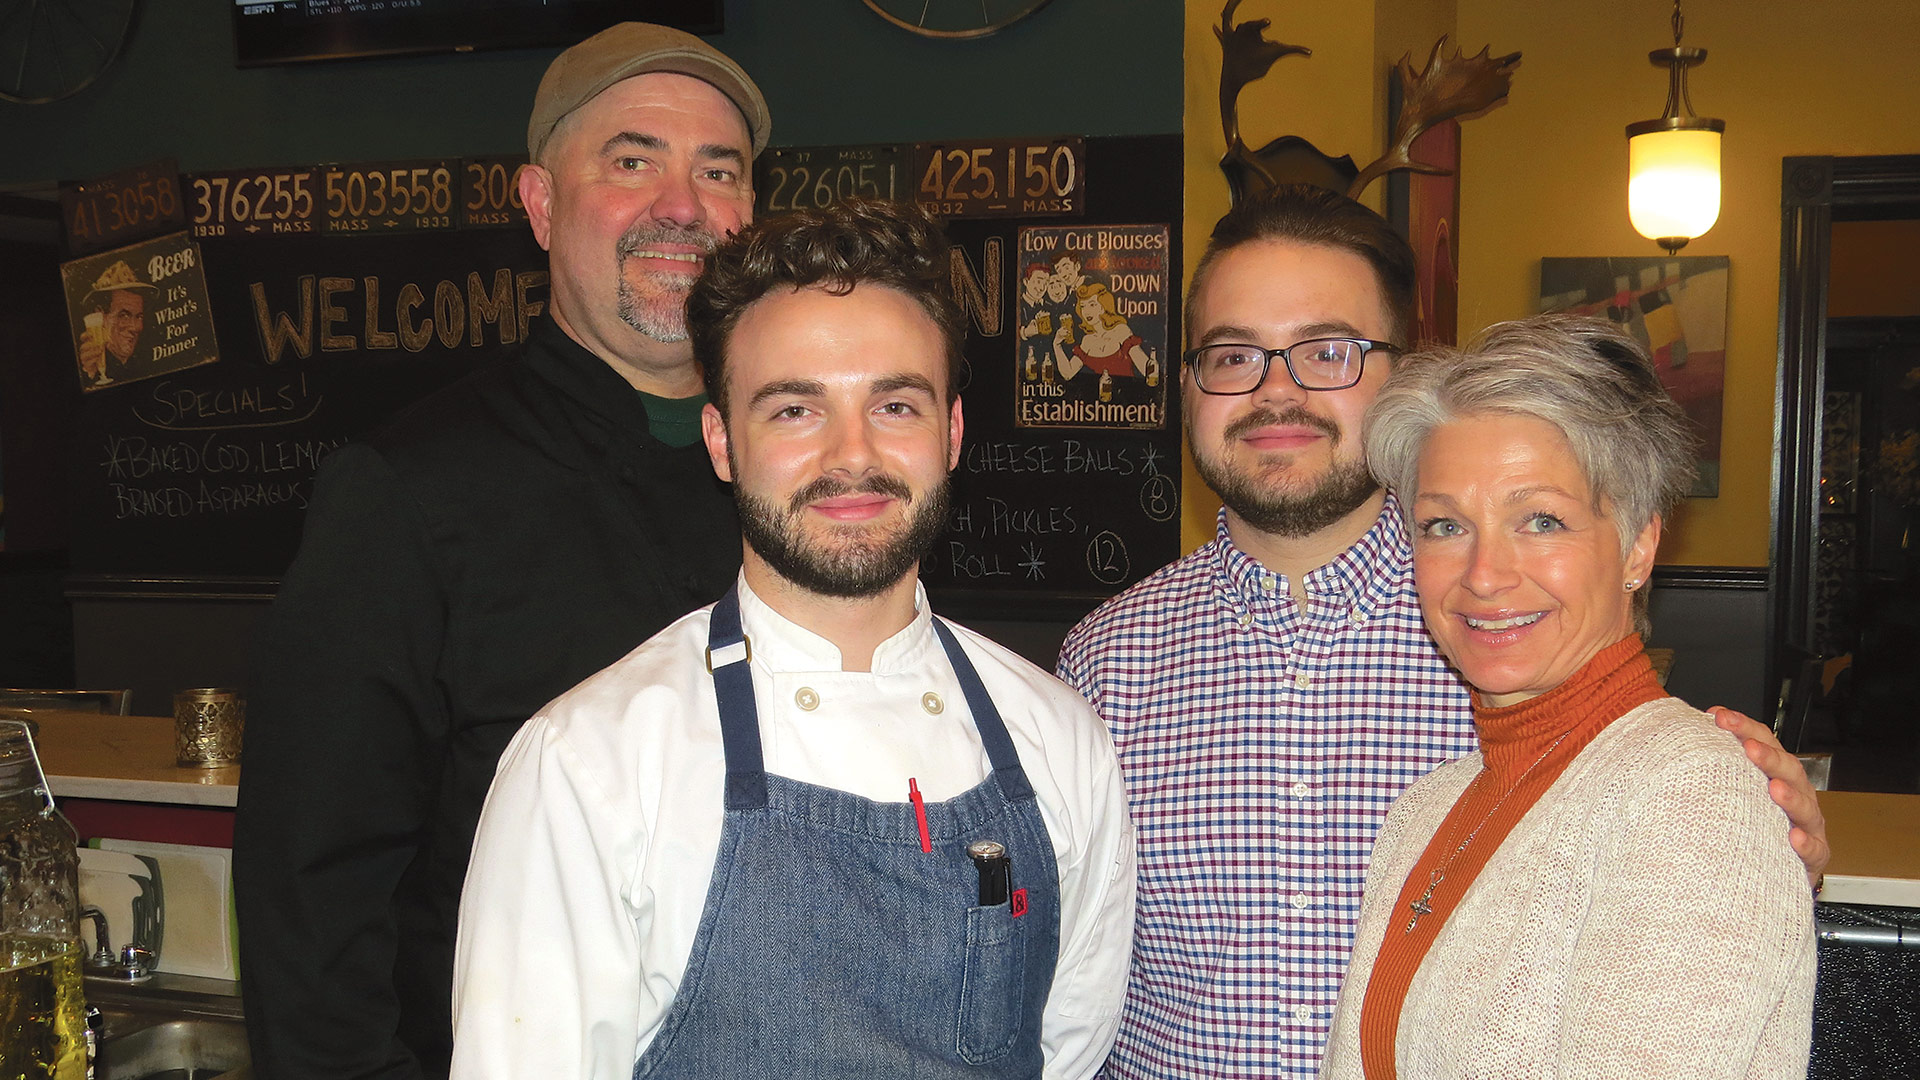 The team at 1105 Main: from left, Joe Stevens, Eric Waldman, Alex Waldman, and Liz Stevens.